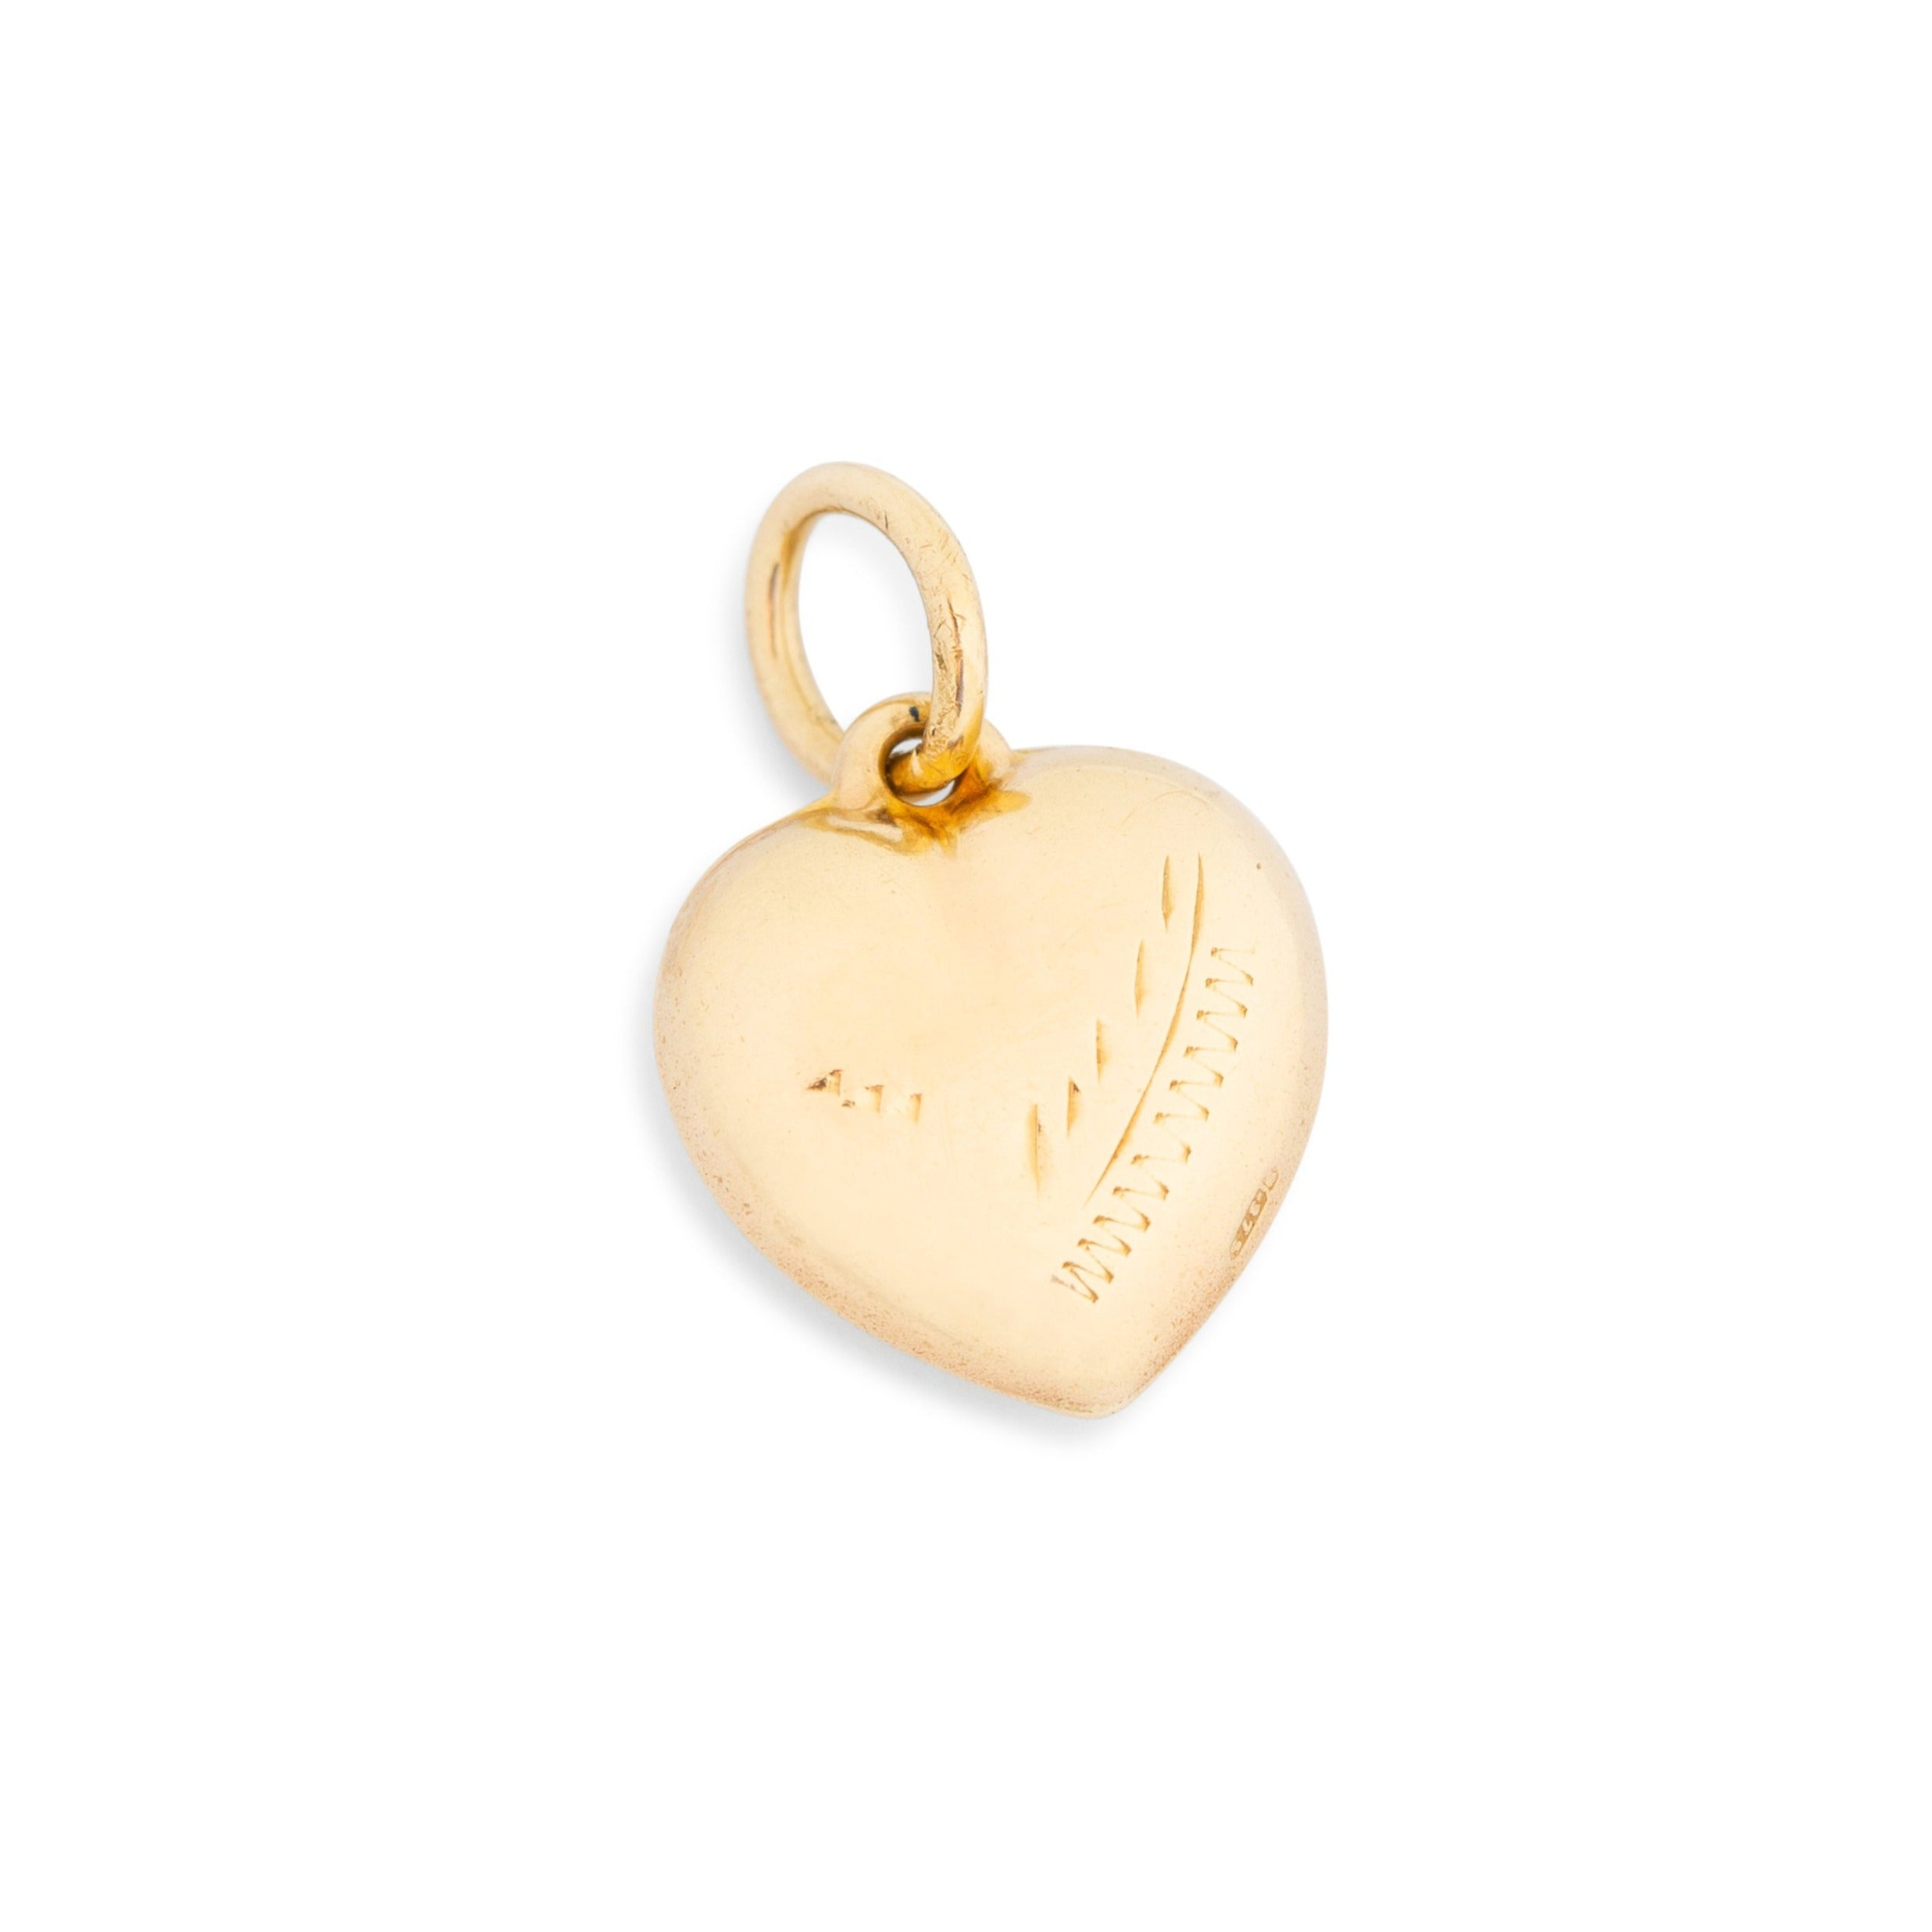 English 9K Engraved Heart Charm